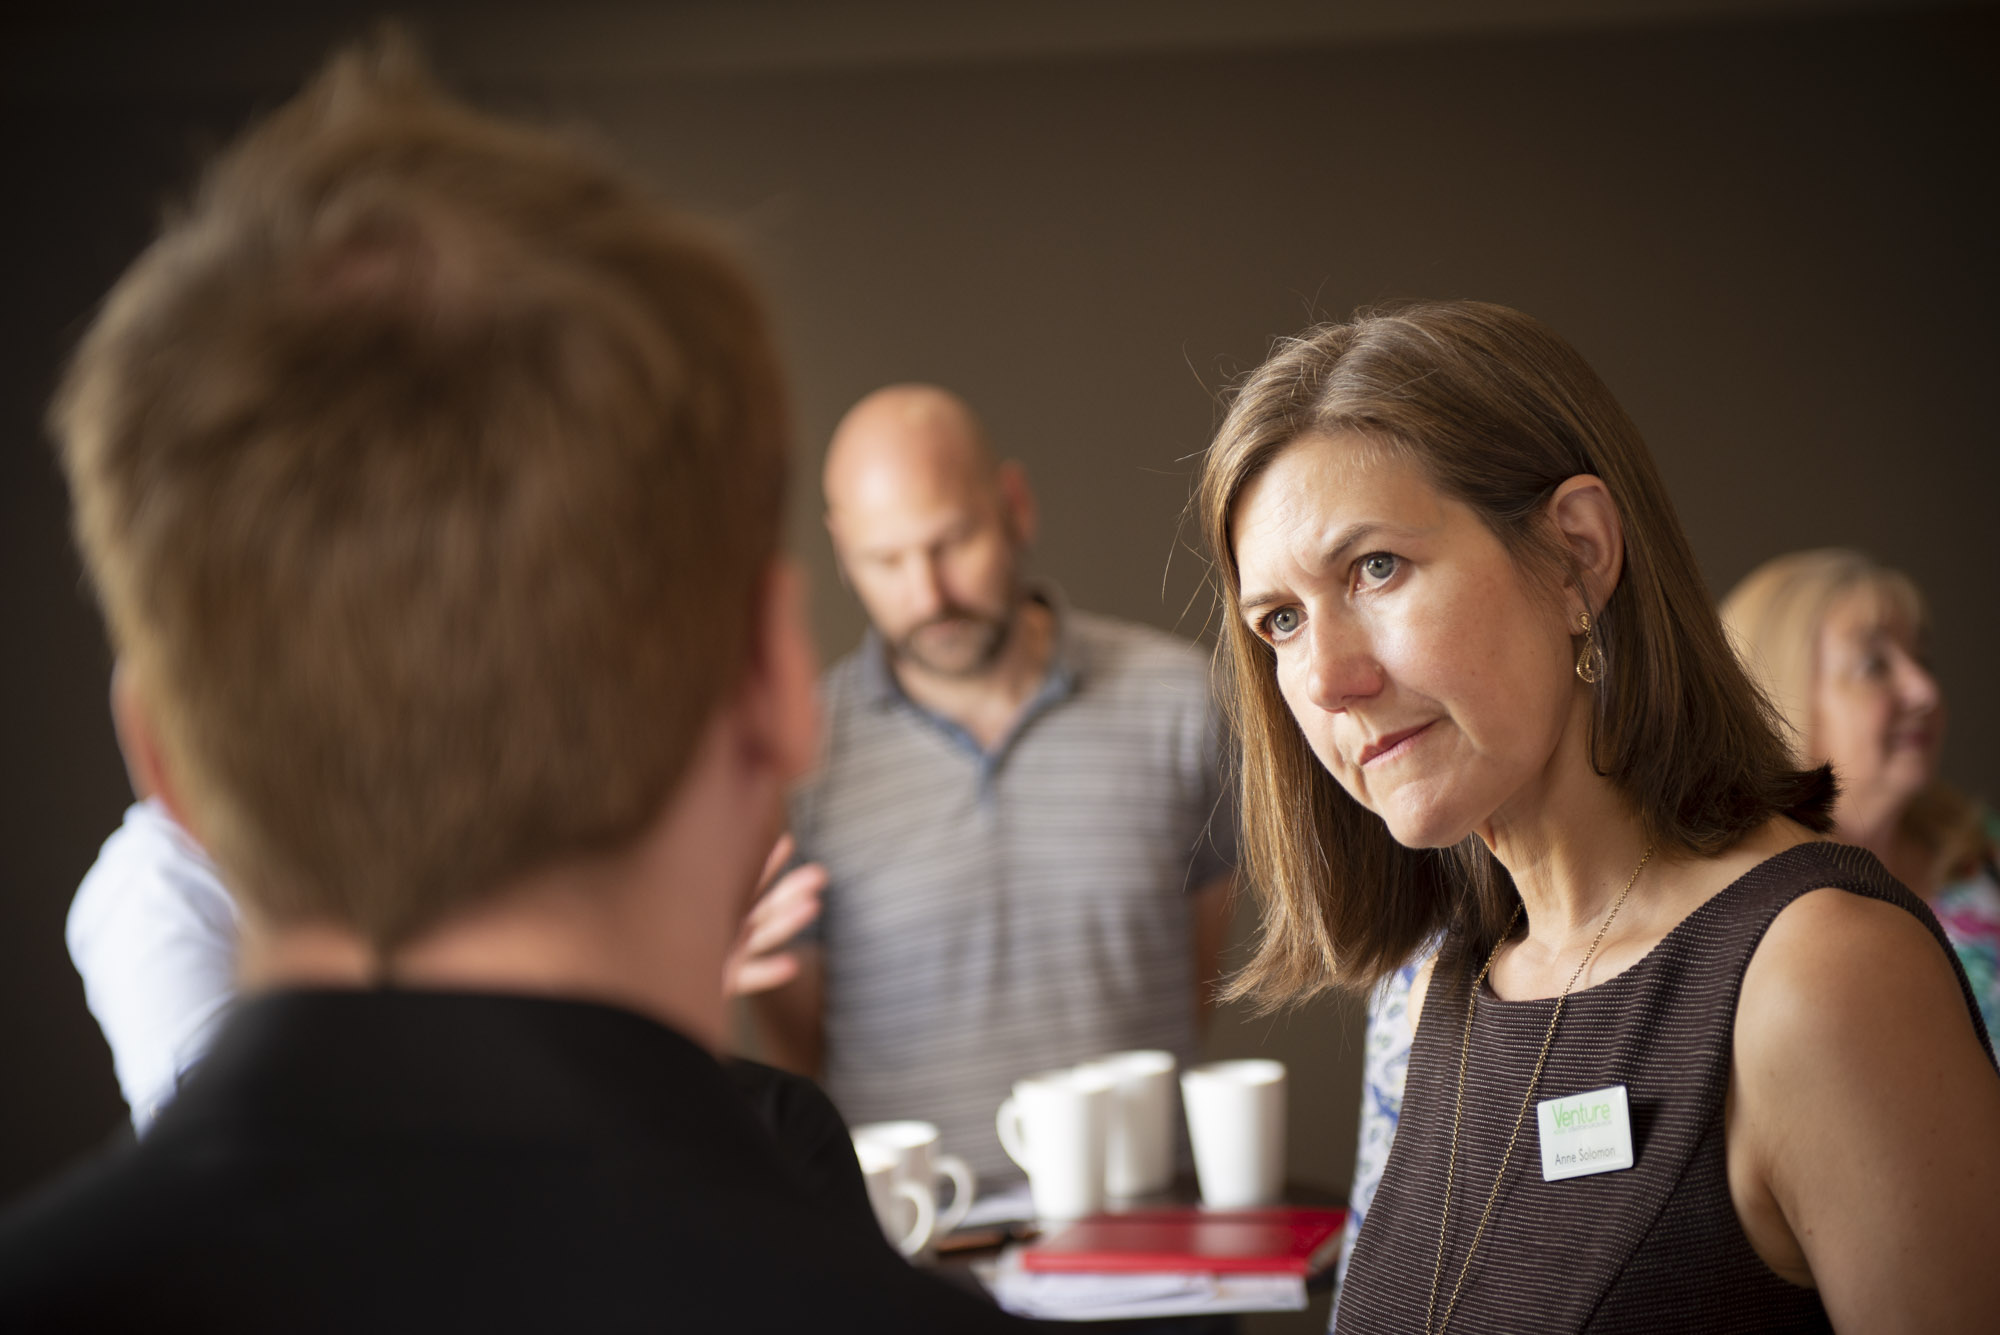 Anne Solomon from Venture House at Stratford Leisure Centre at Business Biscotti at the Crowne Plaza in Stratford upon Avon by Charlie Budd The Tall Photographer